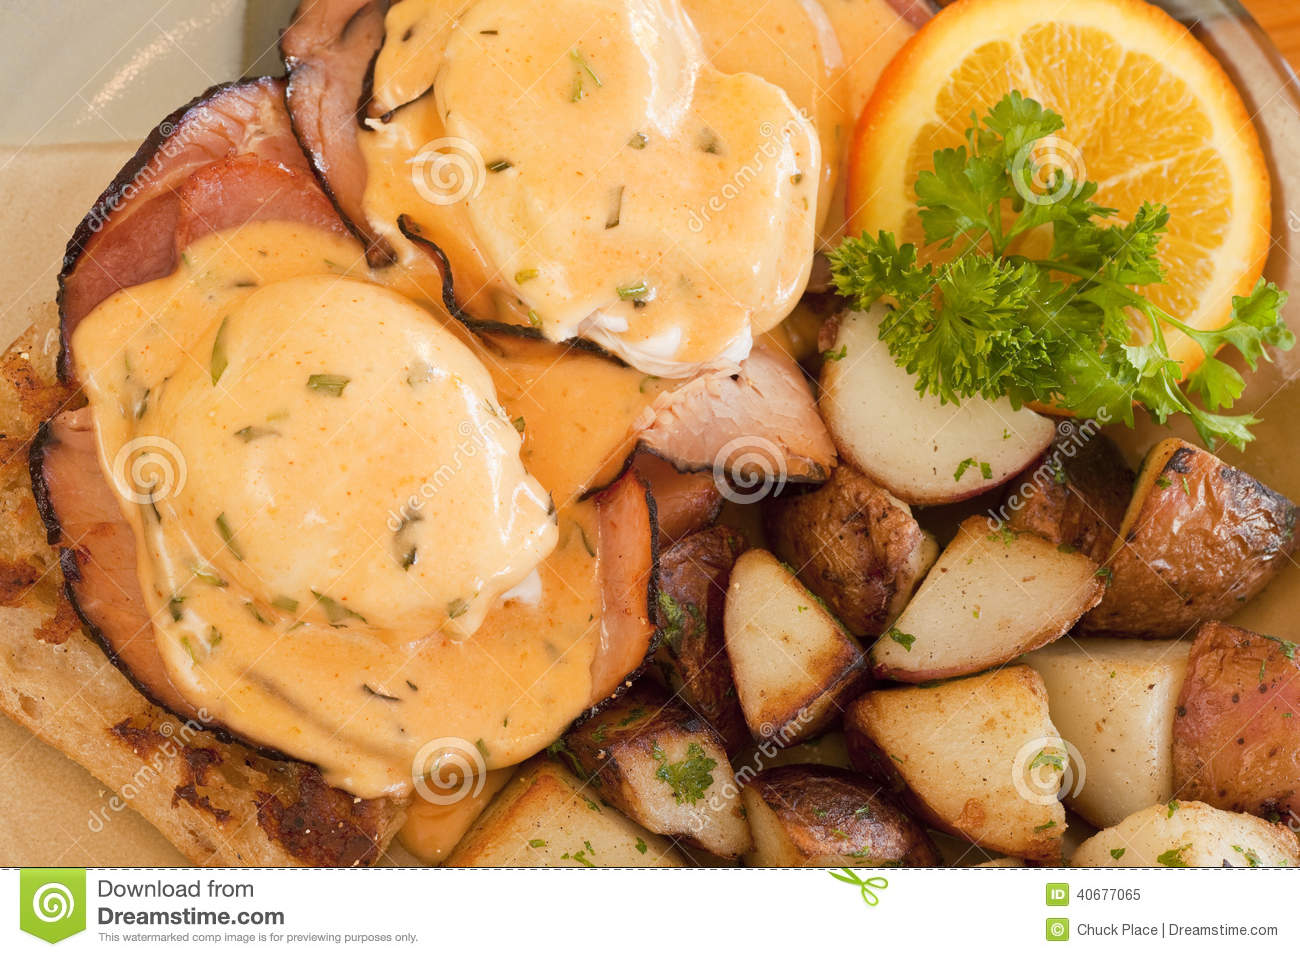 Eggs Benedict Stock Photo - Image: 40677065